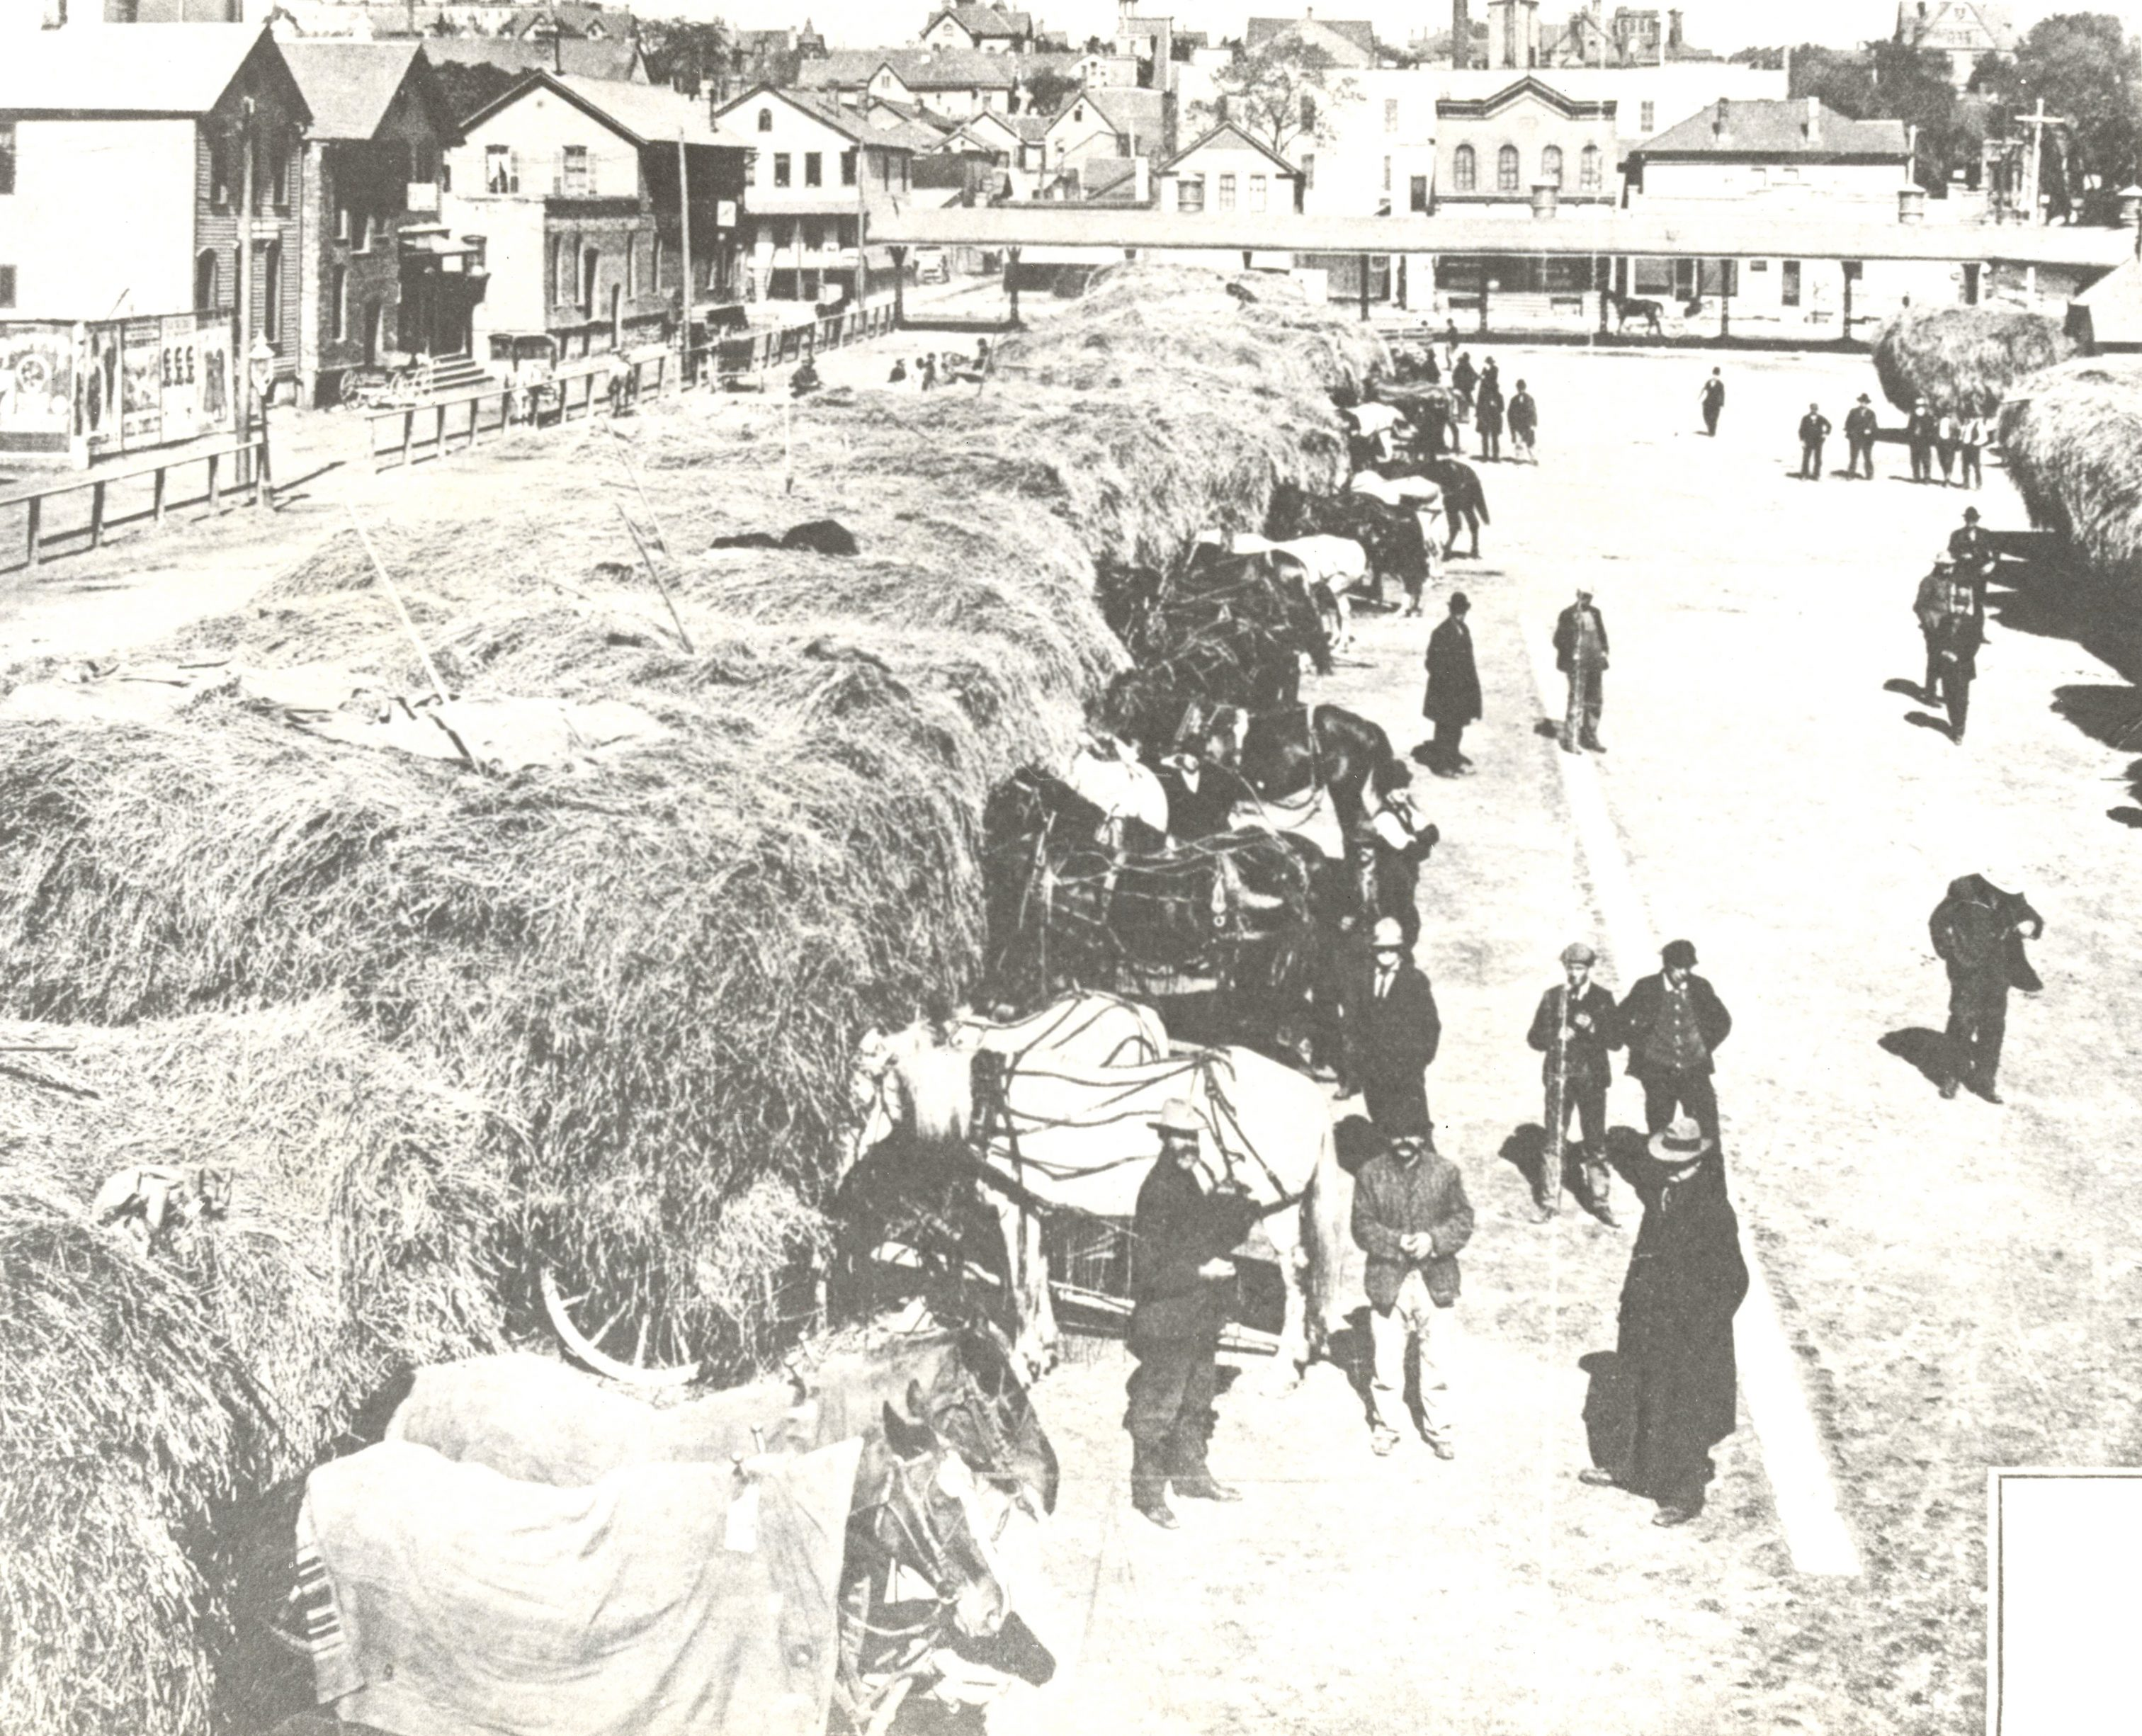 Surplus hay from local farmers is sold at Market Square (now, appropriately, the Haymarket Square area) to in-town users such as the fire department, milk dairies, and vegetable vendors.